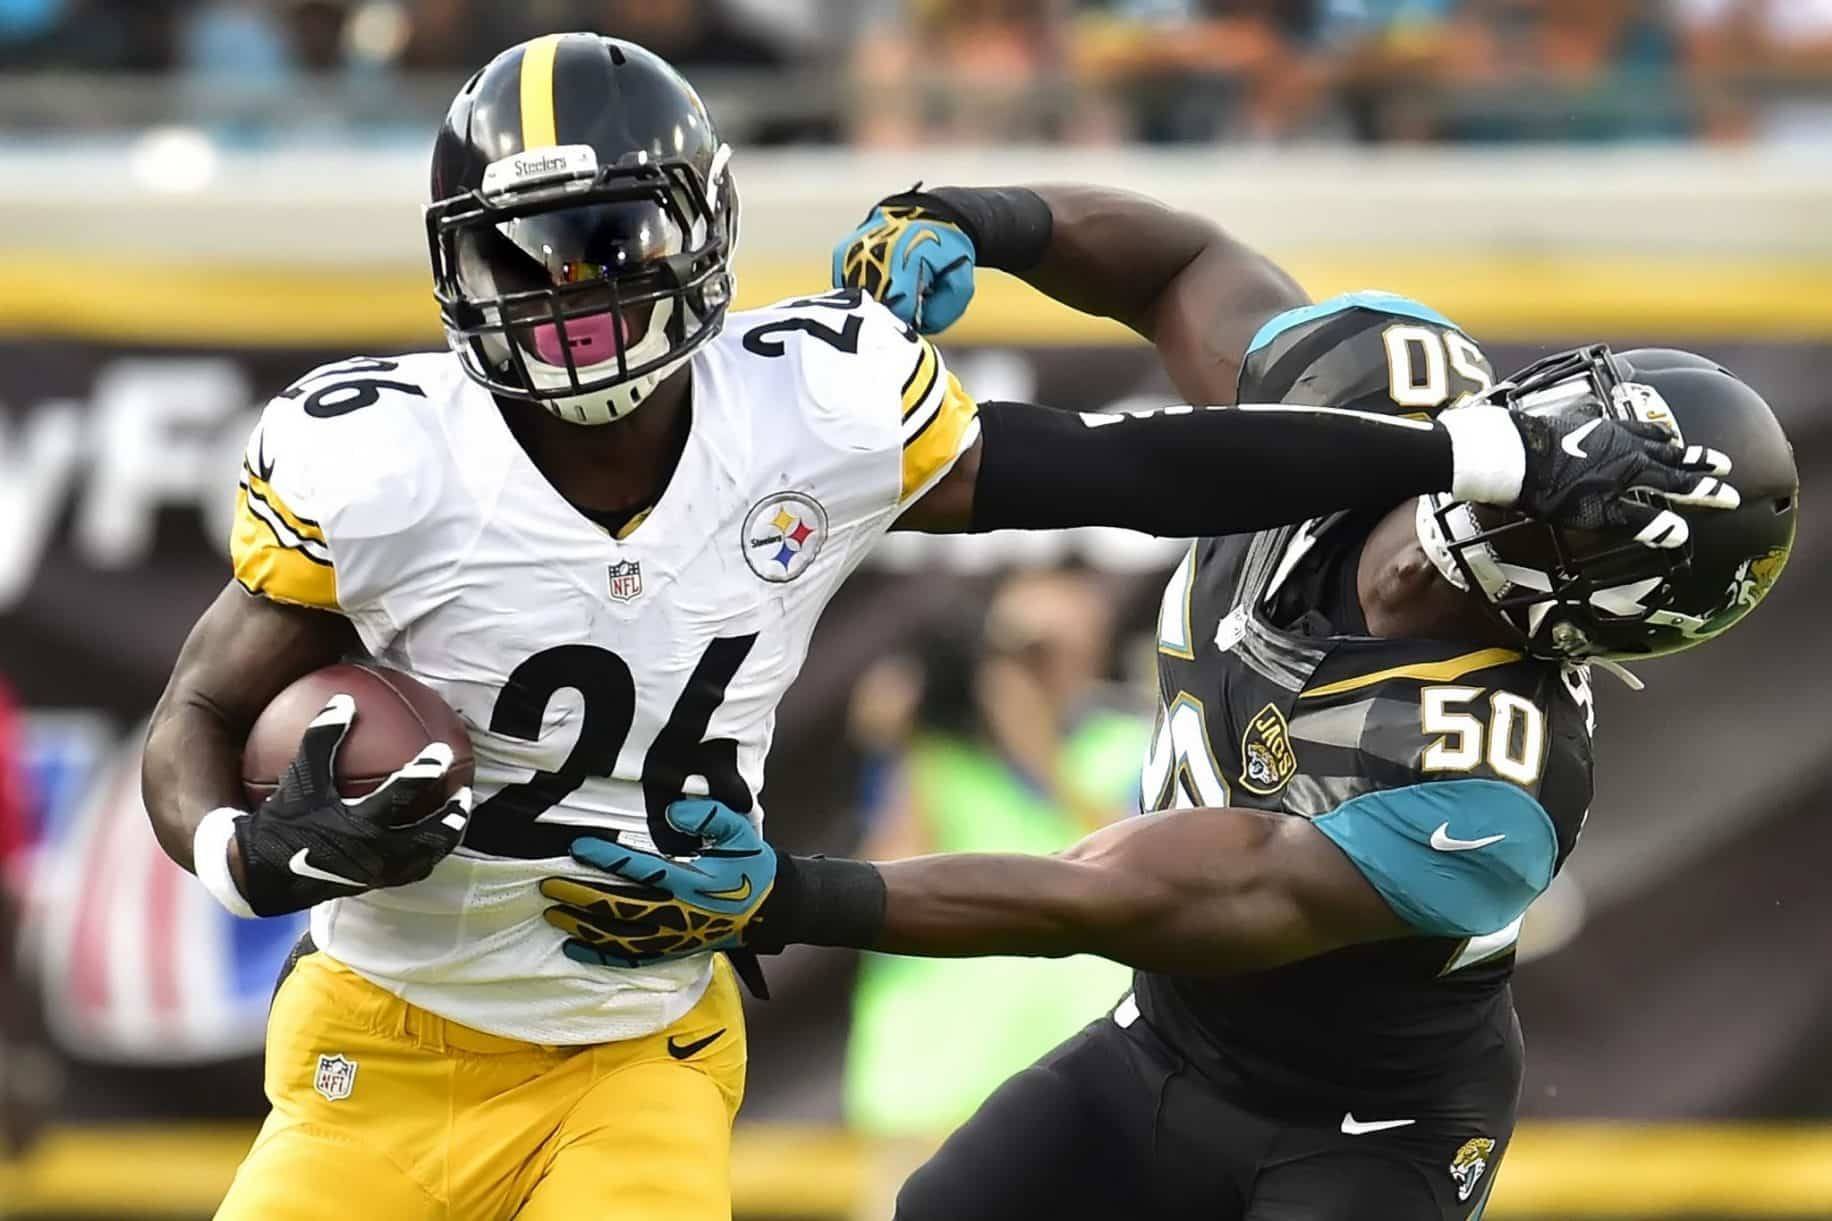 Le'Veon Bell Facing 4-Game Suspension